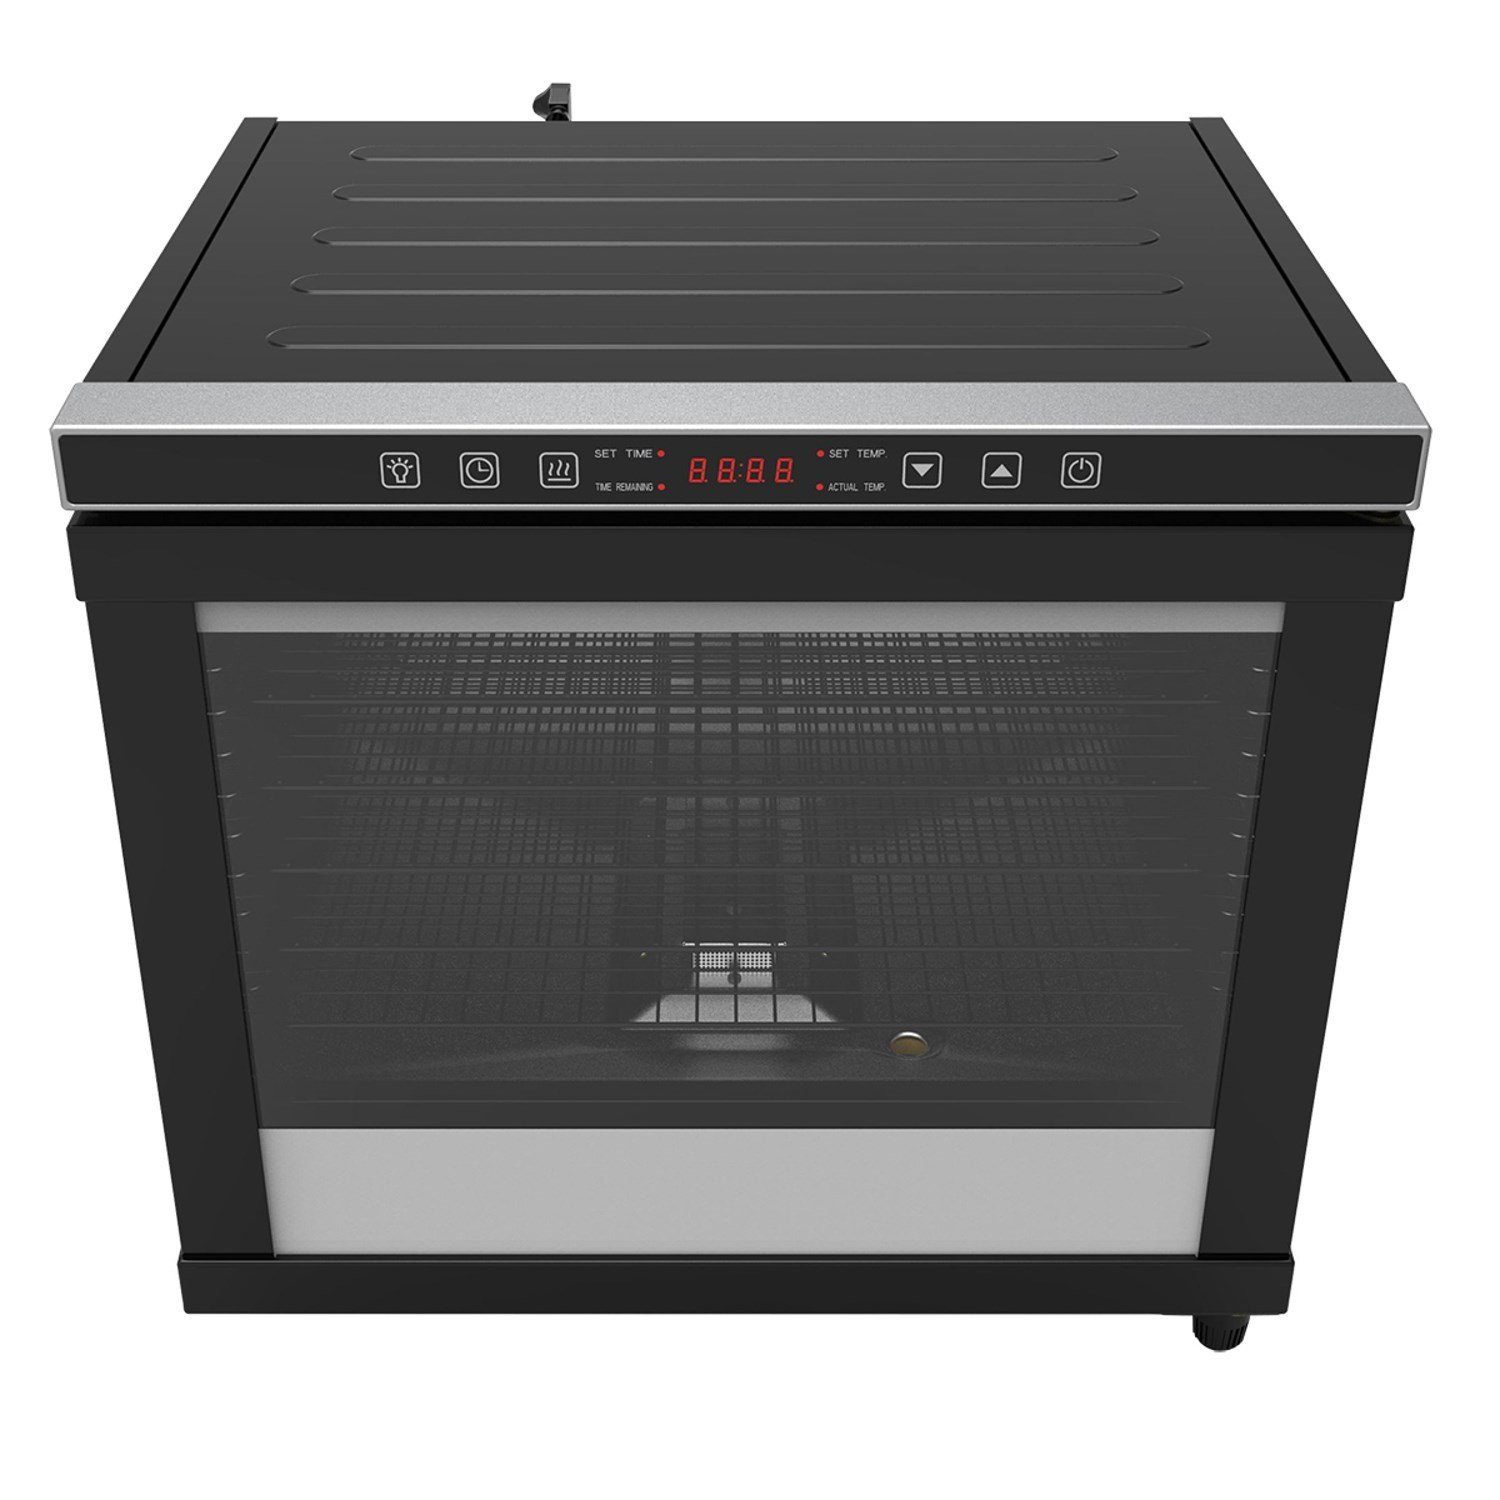 CHARD CD-80C, Pro Power Dehydrator, Black, 80 liter, 12 rack, 1700 watts